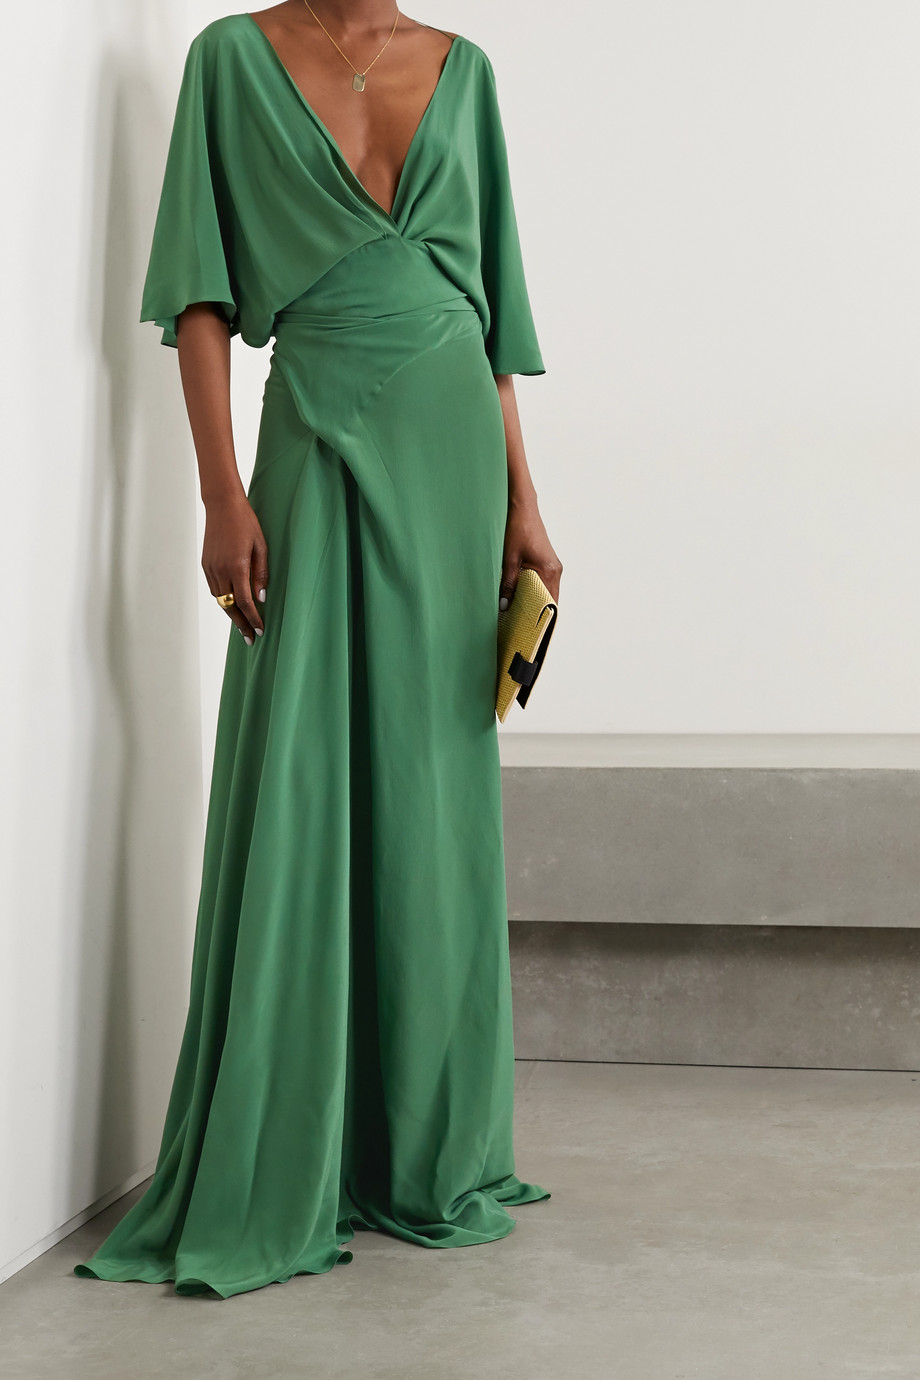 CORTANA + NET SUSTAIN Martina draped silk maxi dress